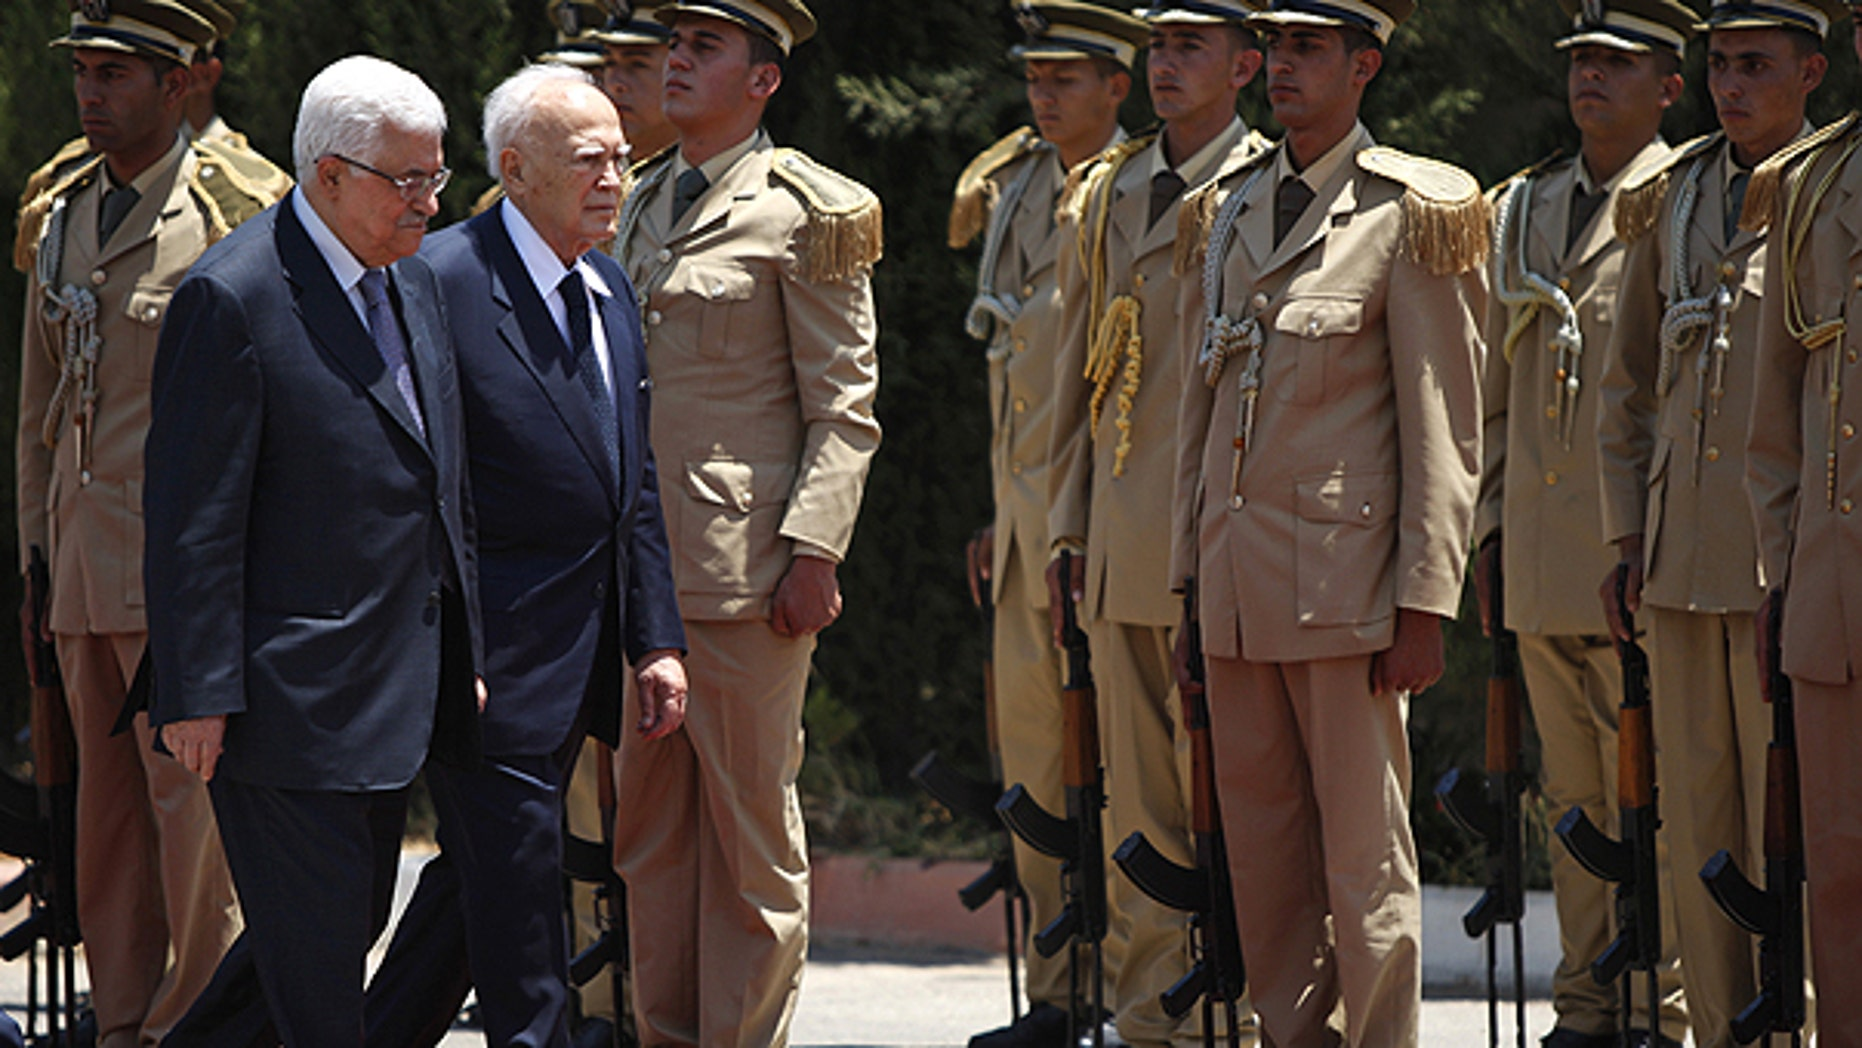 July 12: Palestinian President Mahmoud Abbas, left, and Greek President Karolos Papoulias review an honor guard prior their meeting in the West Bank city of Ramallah.